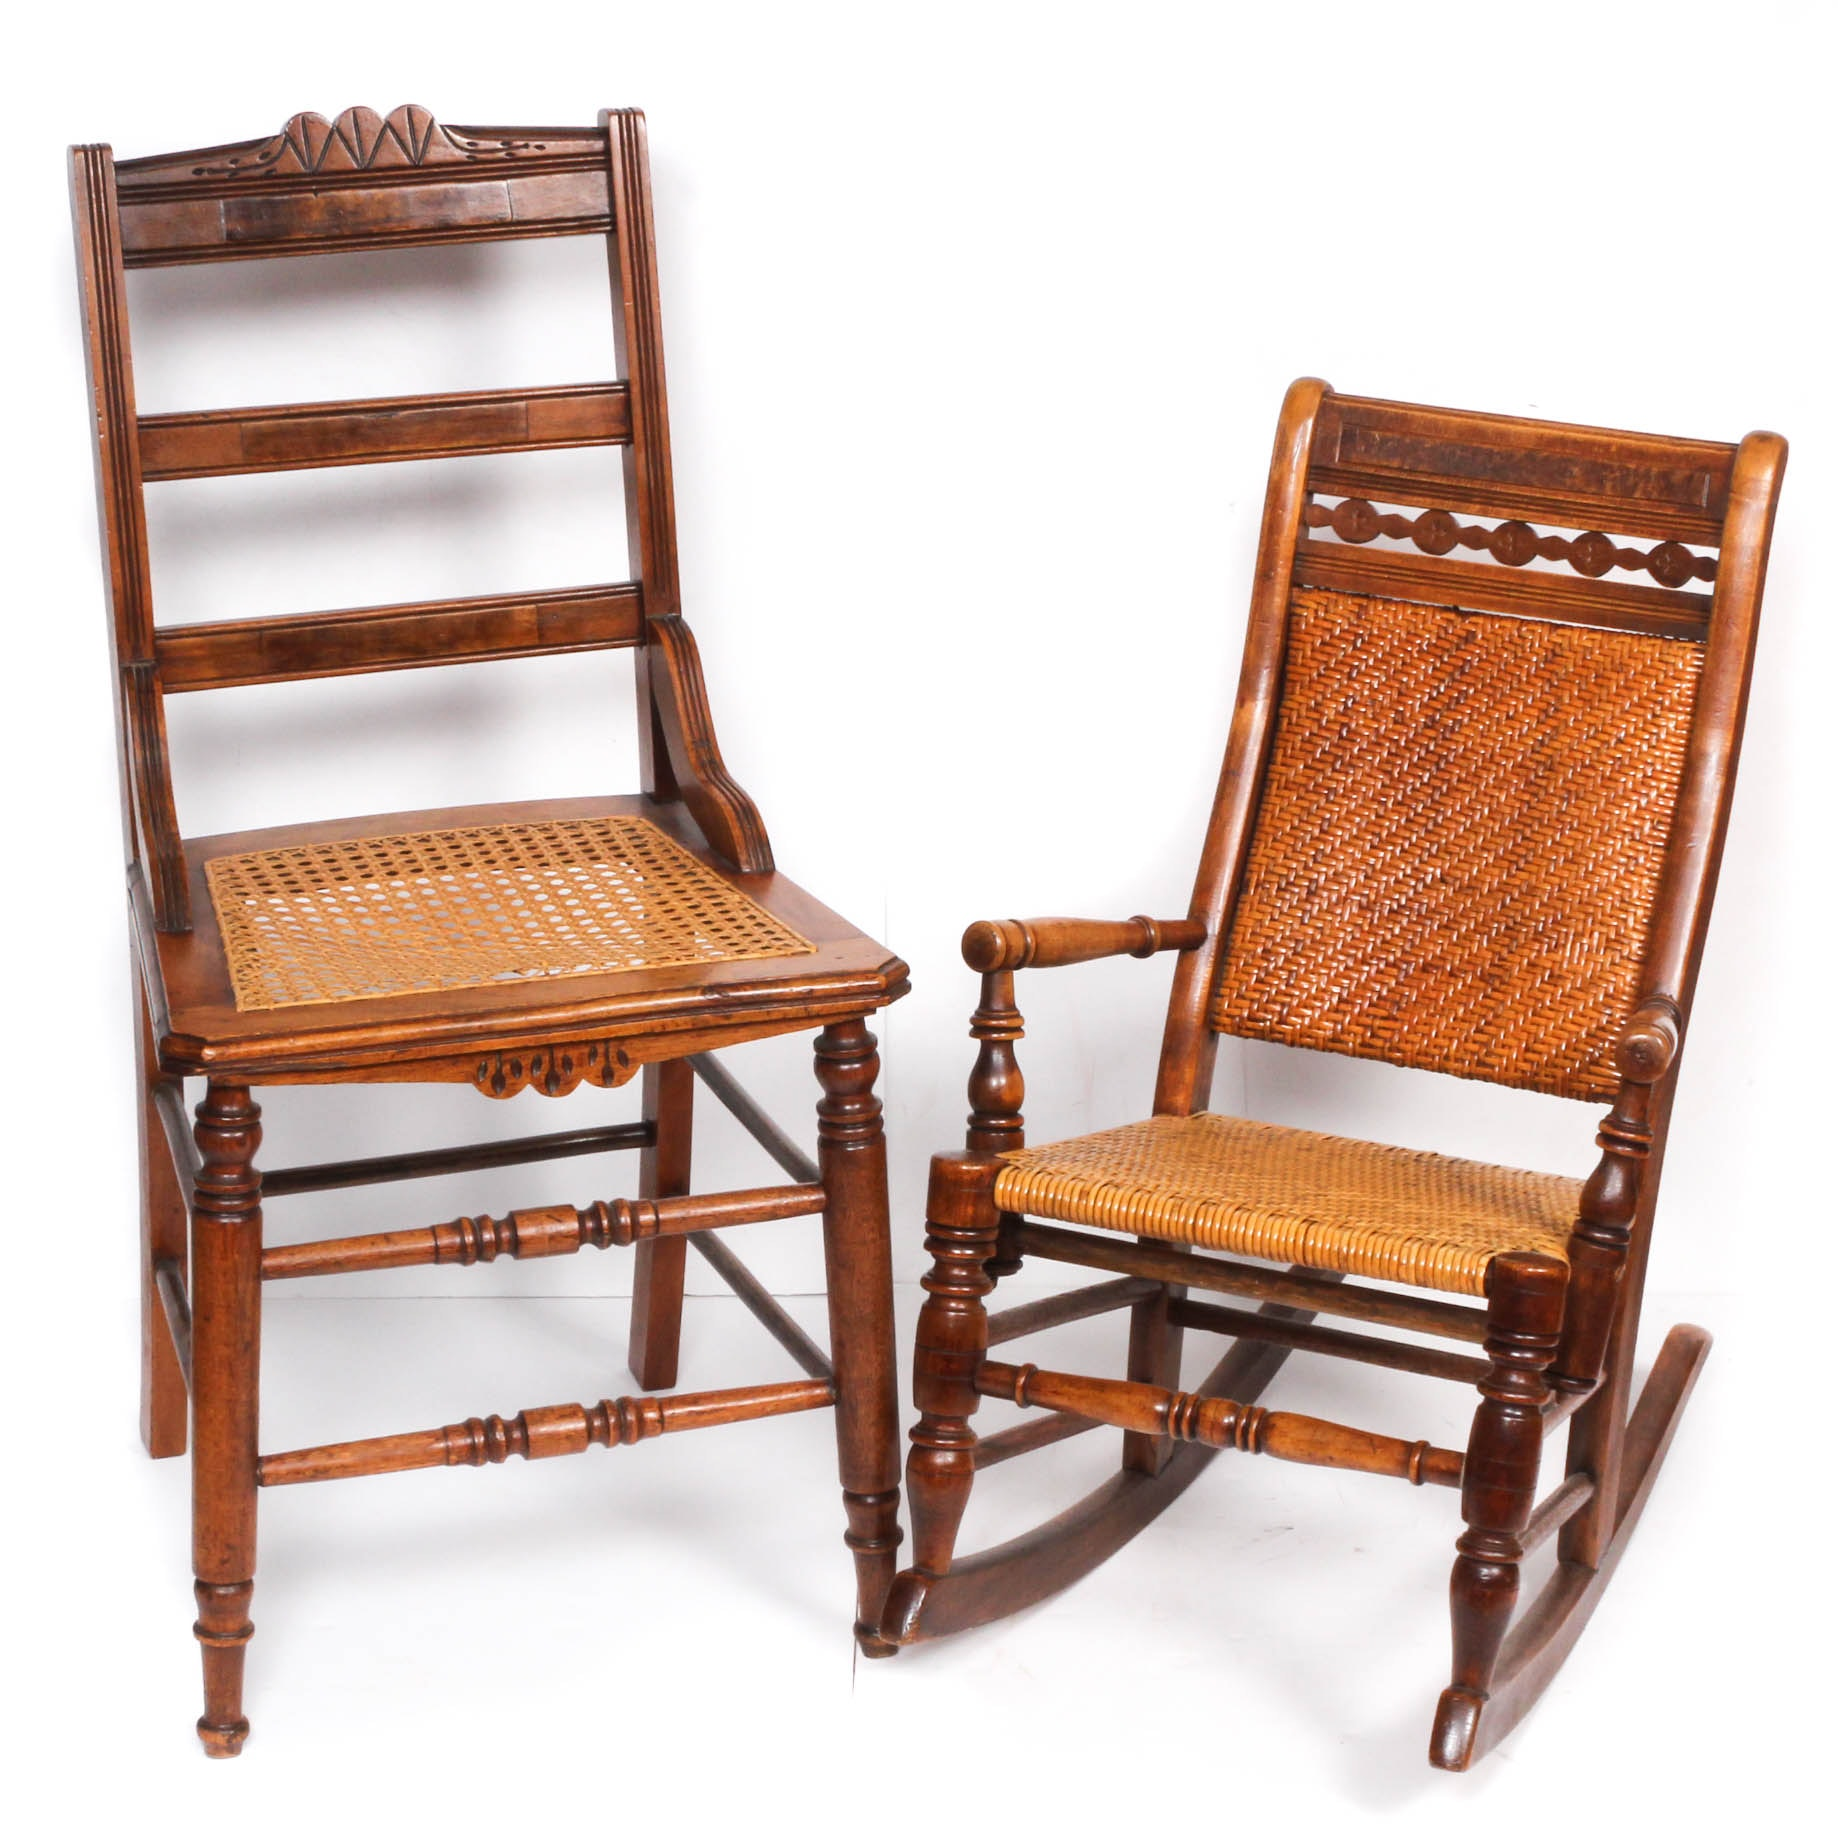 Wood Framed Caned Seat Chairs